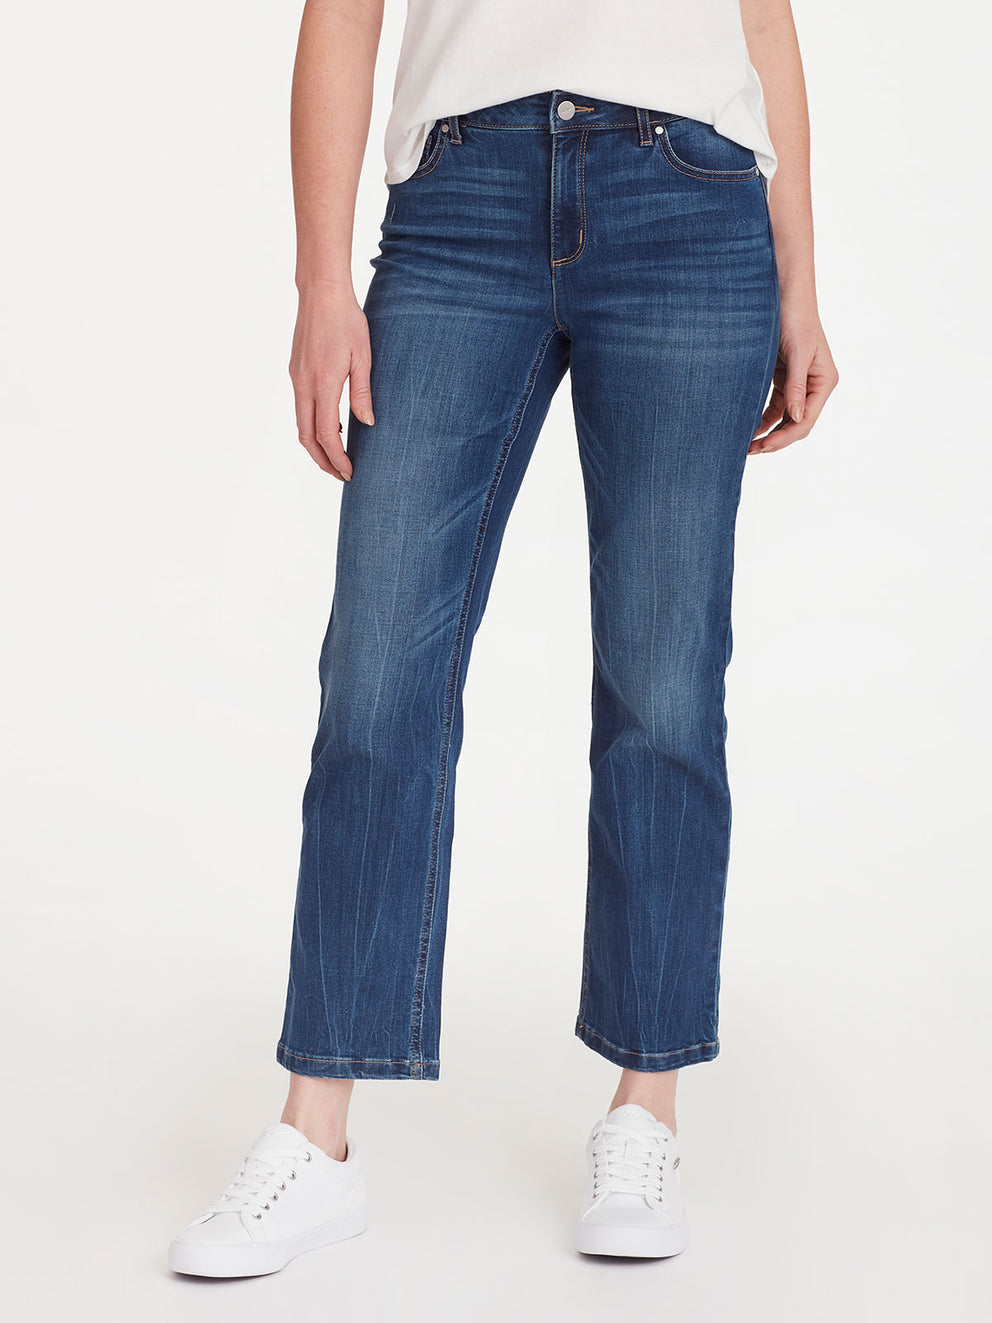 The Jones New York Lexington Montana Wash Ankle Jeans in color Montana Wash - Image Position 1